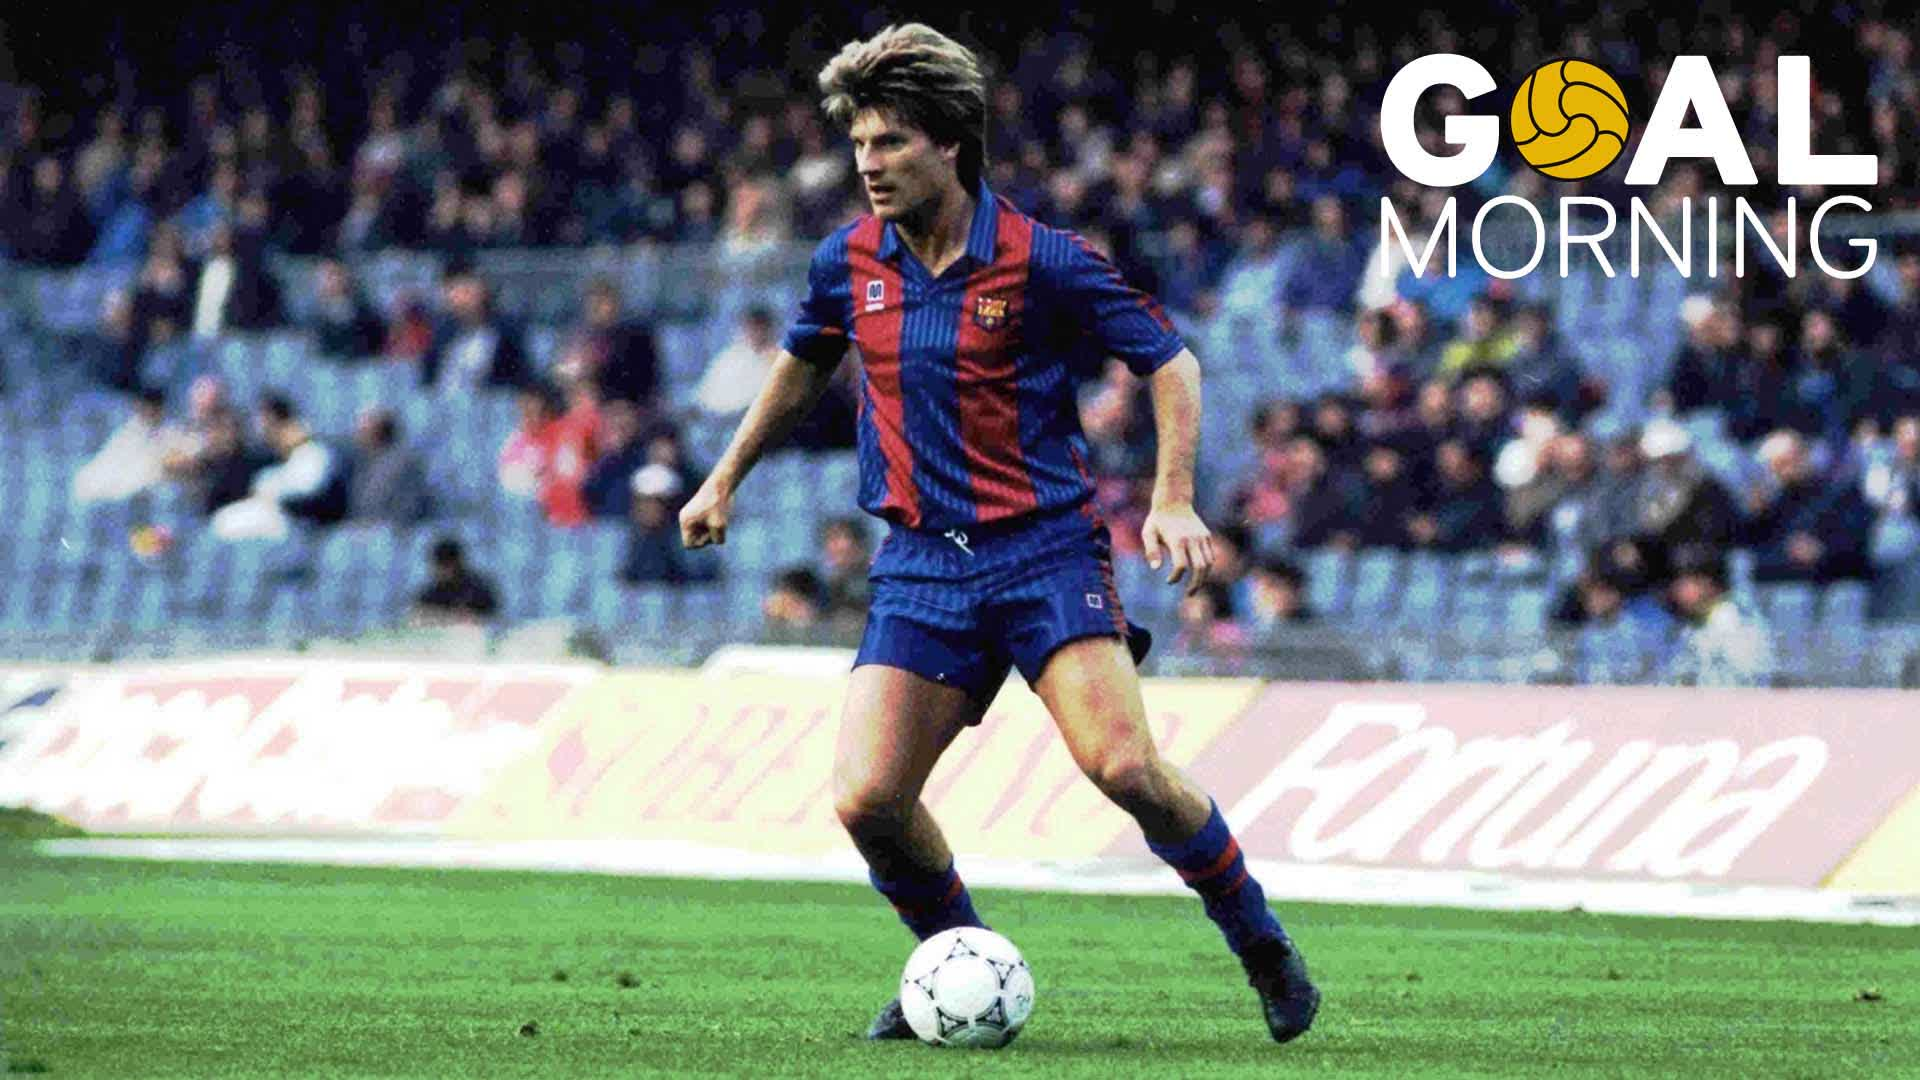 G⚽️AL MORNING!!! �� Happy Birthday, Laudrup! �� https://t.co/Y0E7o2iLxs